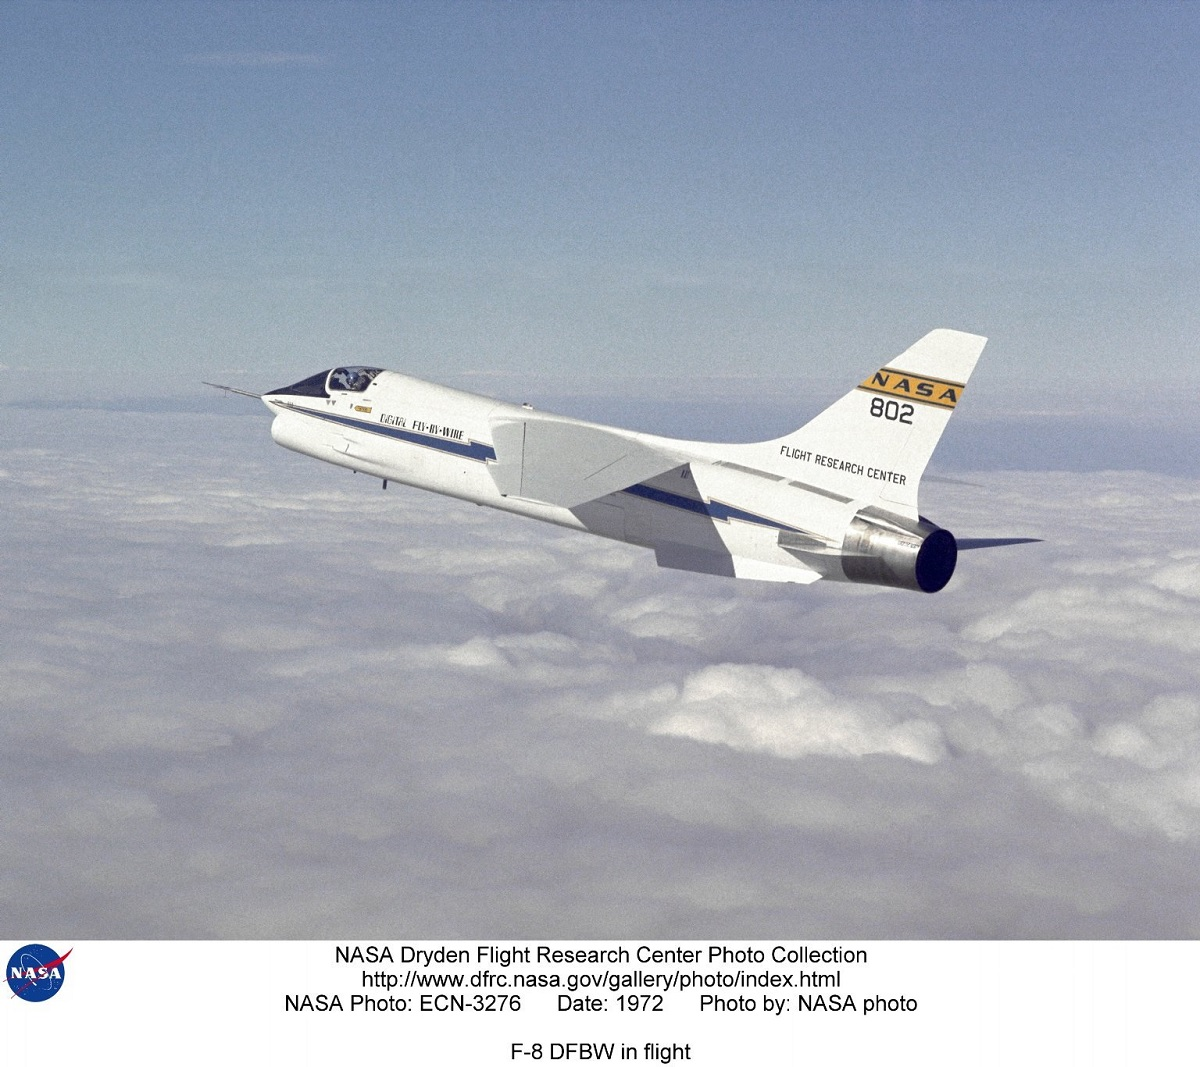 A QUICK LOOK AT THE MODIFIED F-8 CRUSADER THAT SERVED AS TESTBED FOR ...